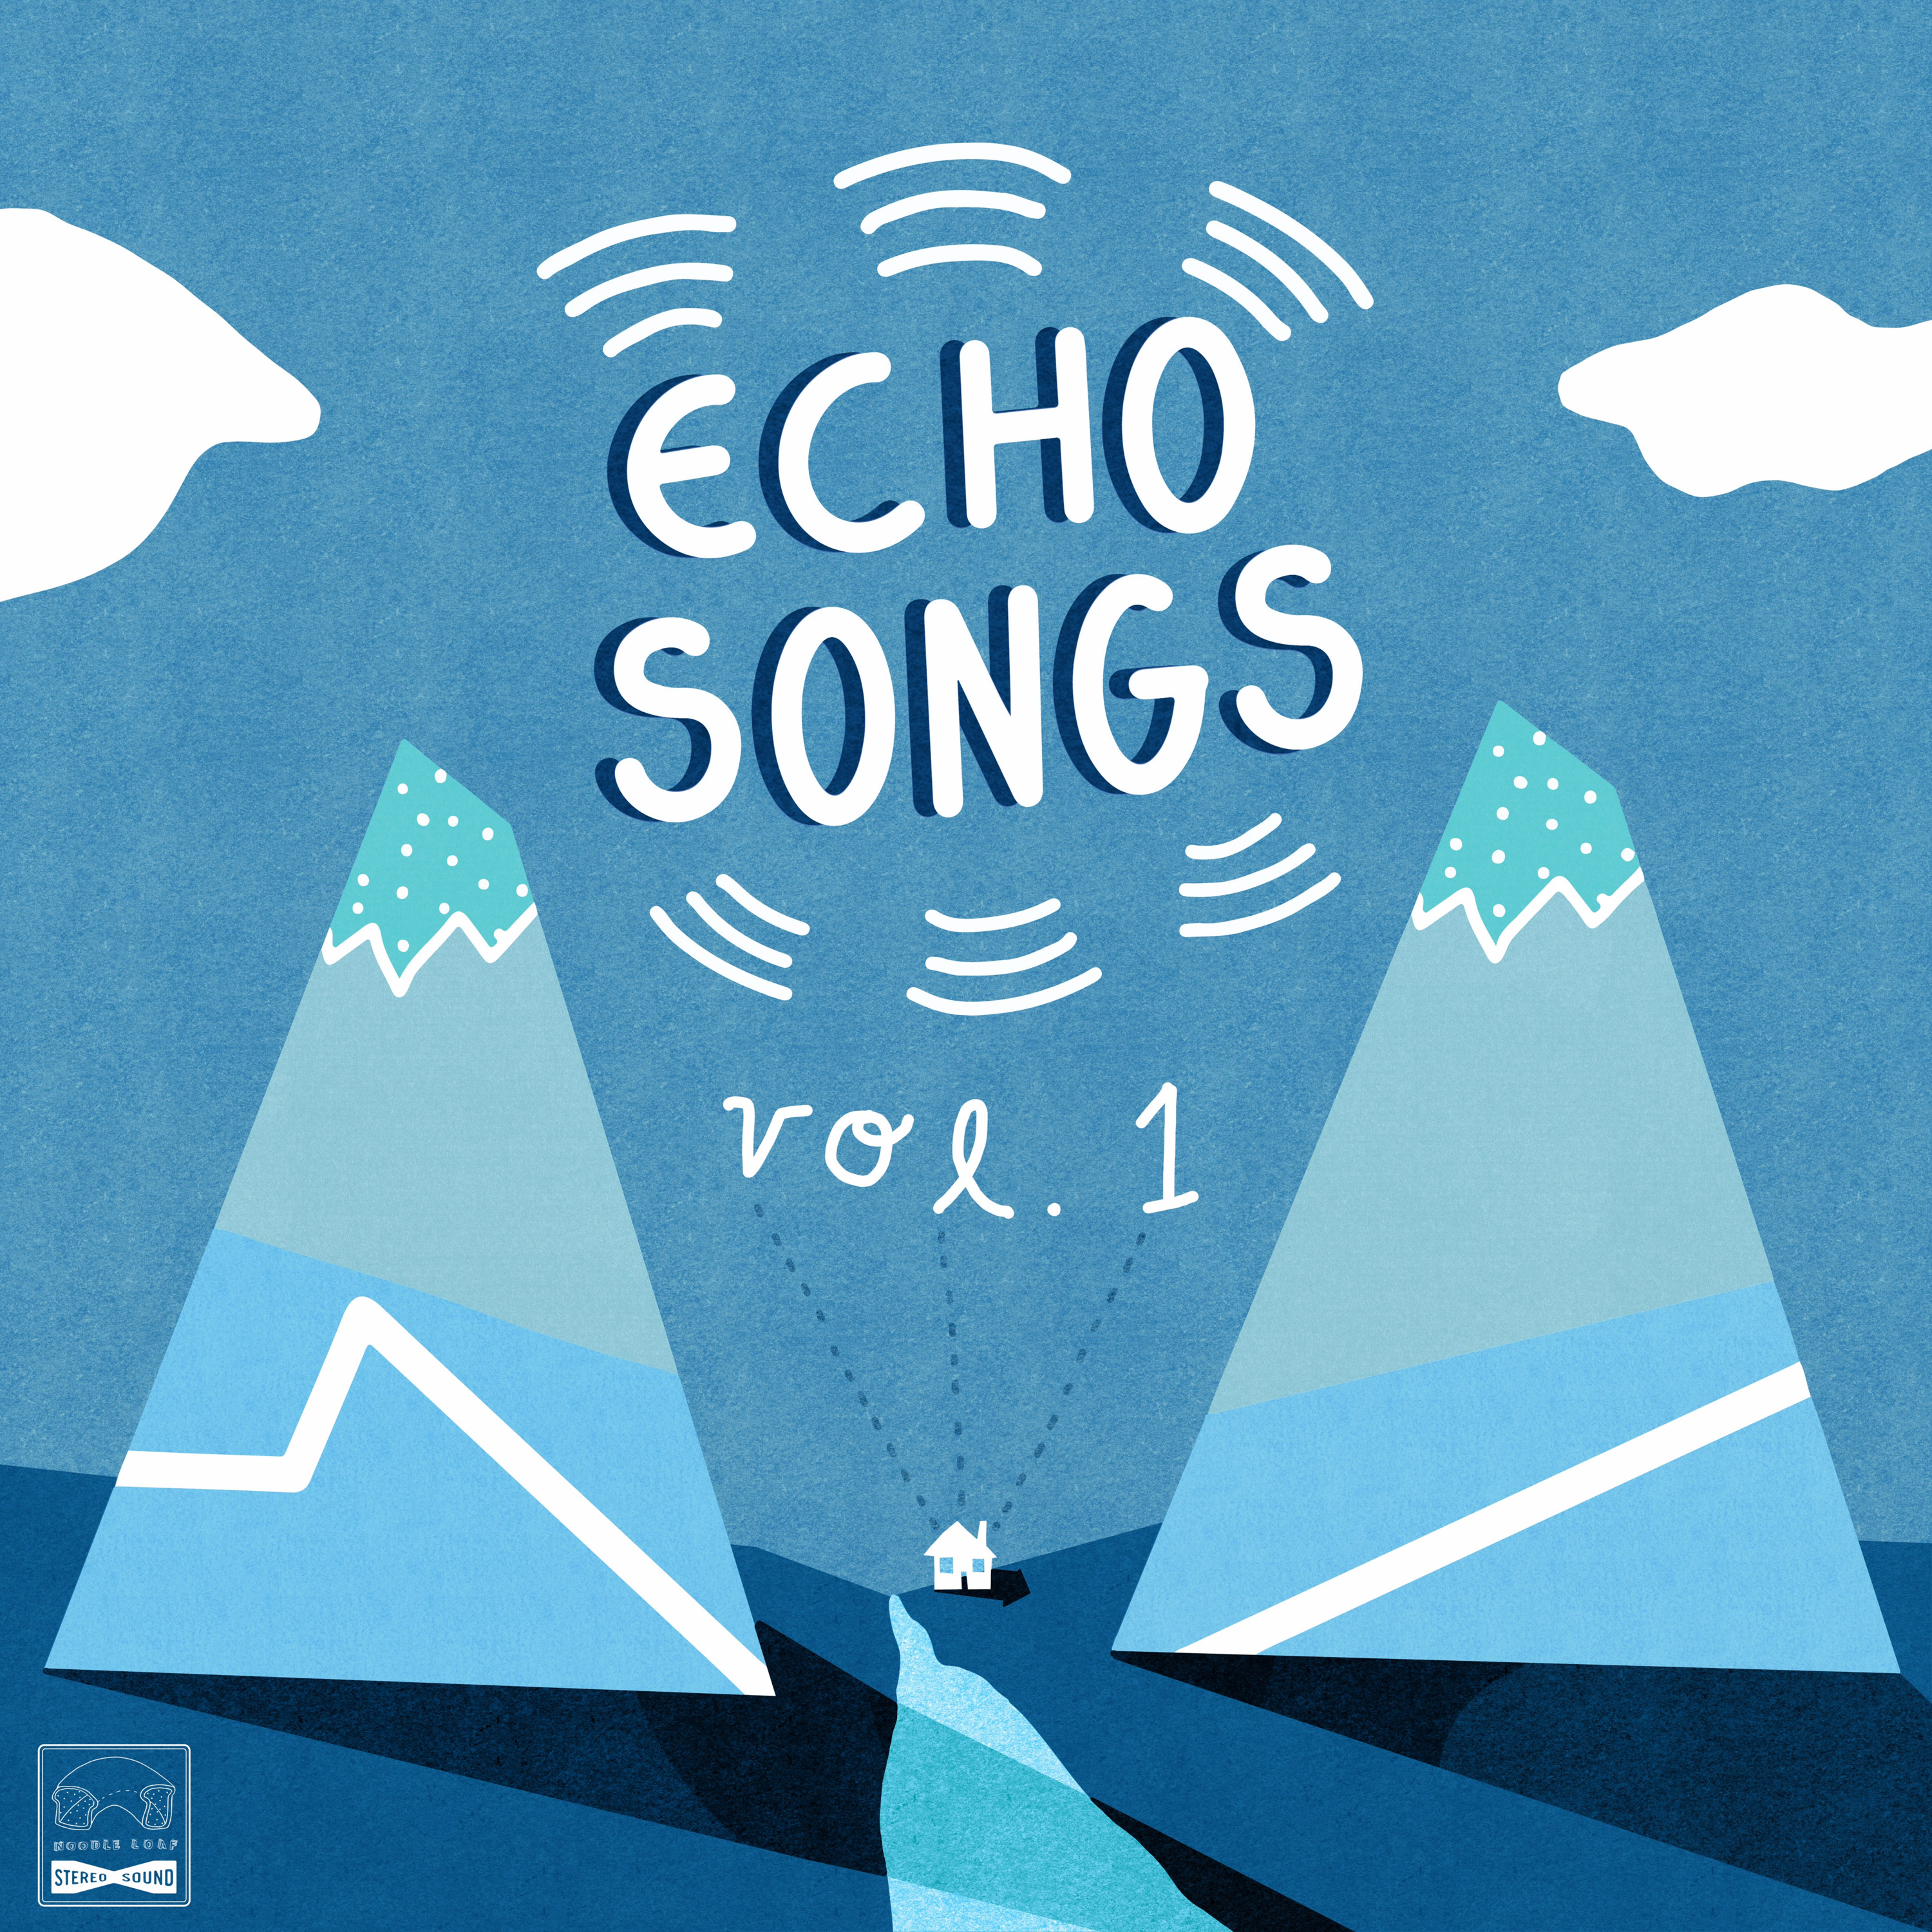 ANNOUNCEMENT: Echo Songs, Vol. 1 OUT NOW